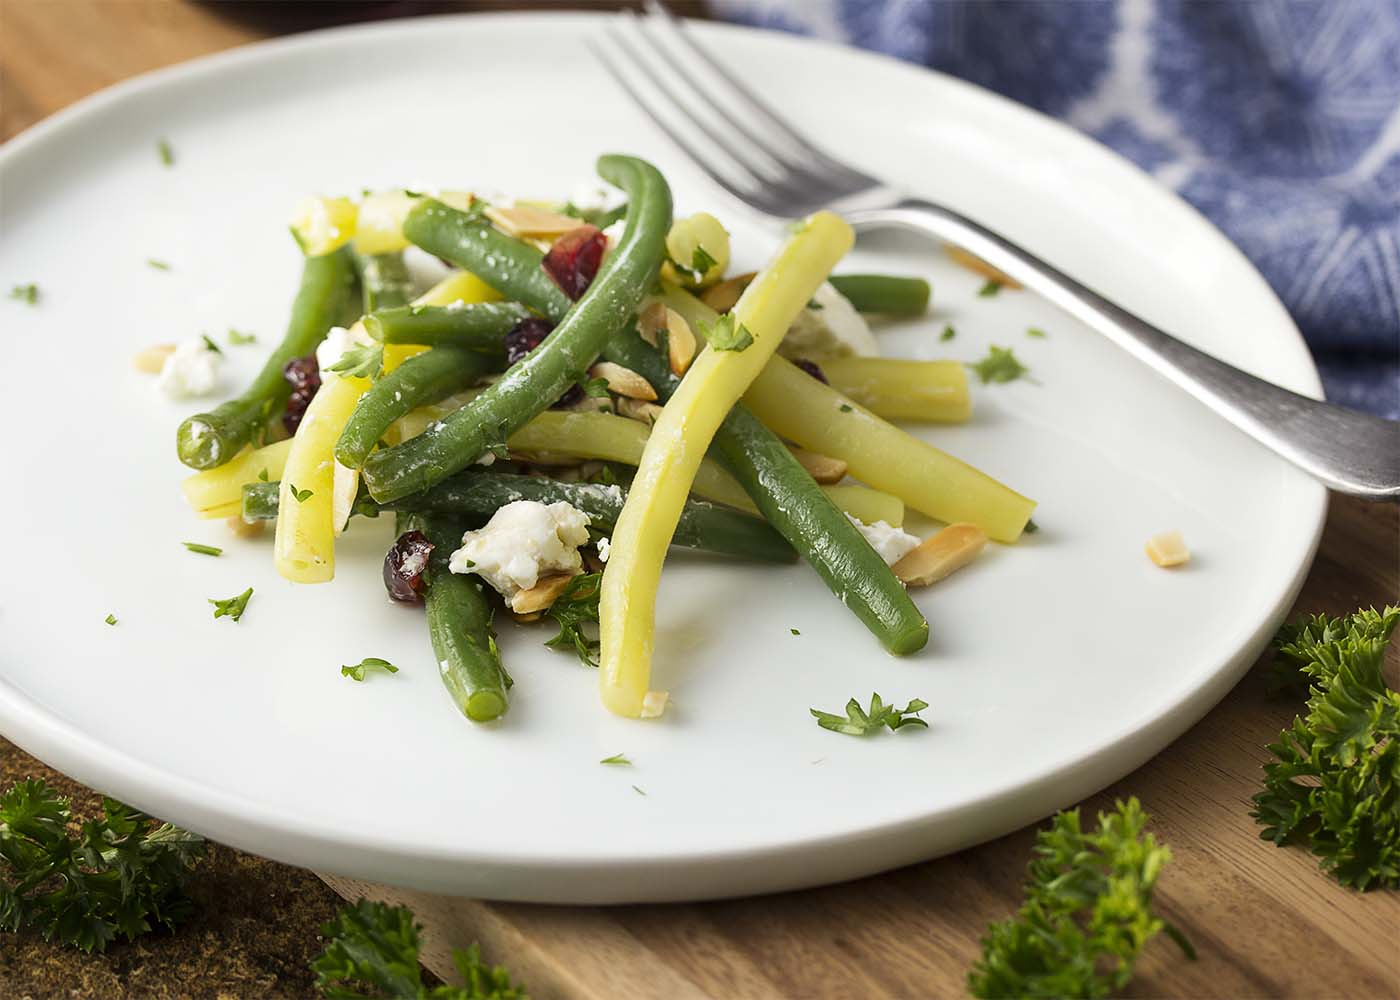 A composed plate of green bean salad showing the almonds, dried cranberries and goat cheese. Chopped parsley scattered about.